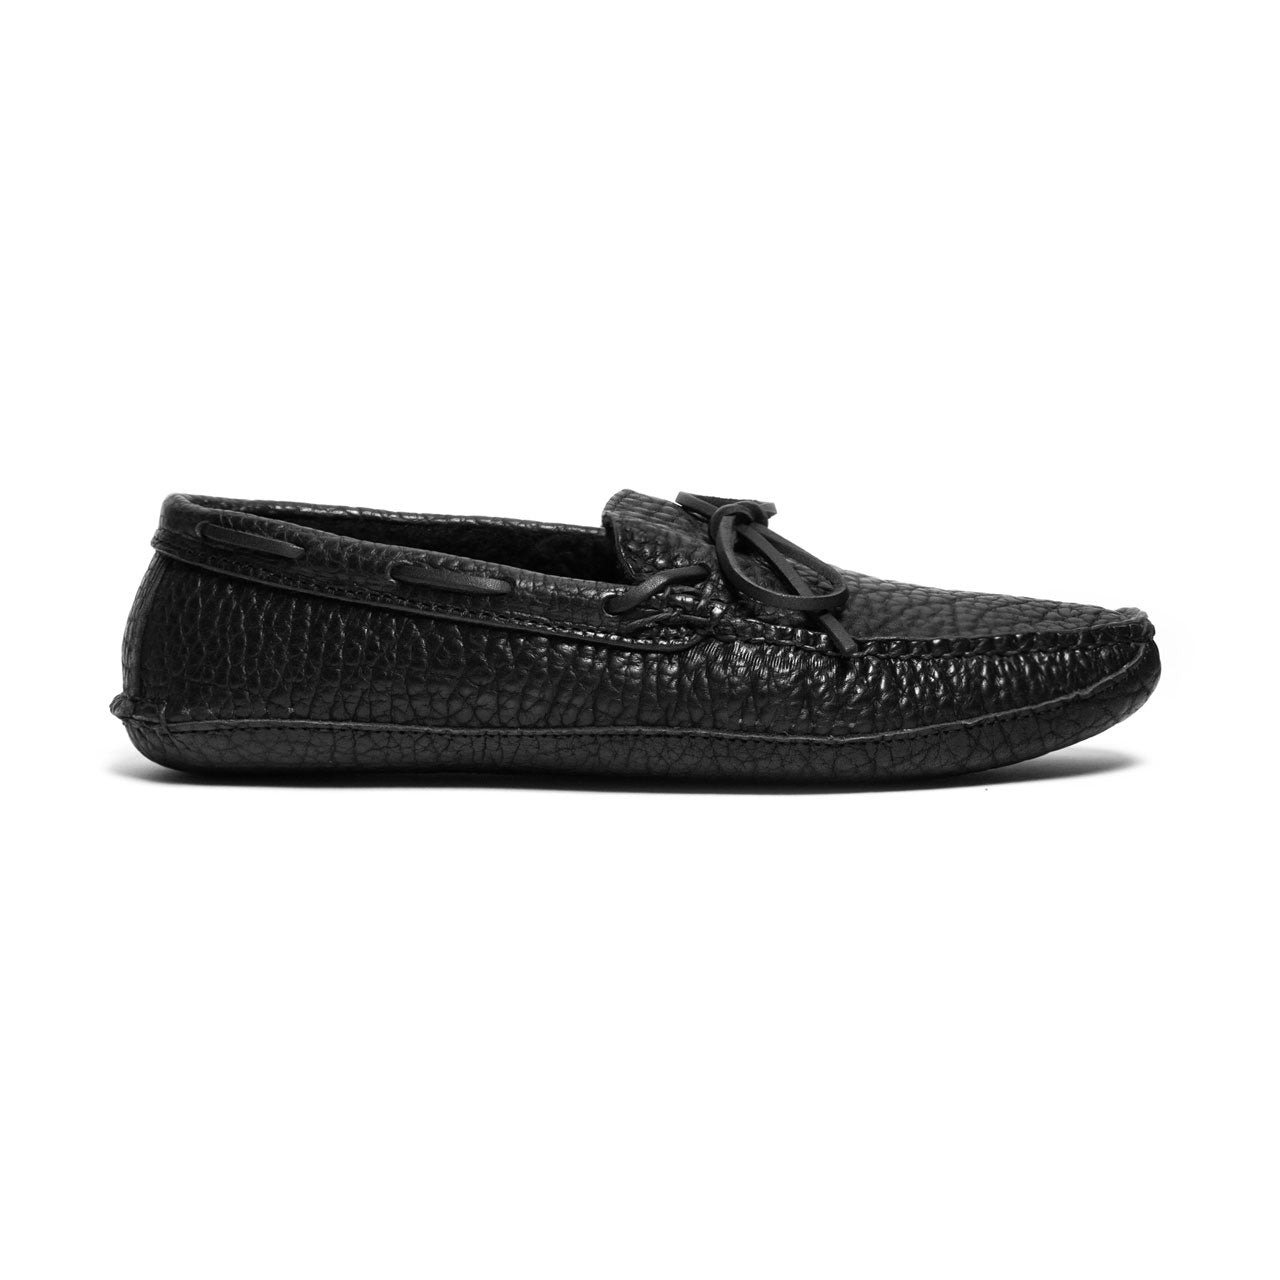 Rancourt Bison Freeman Slipper